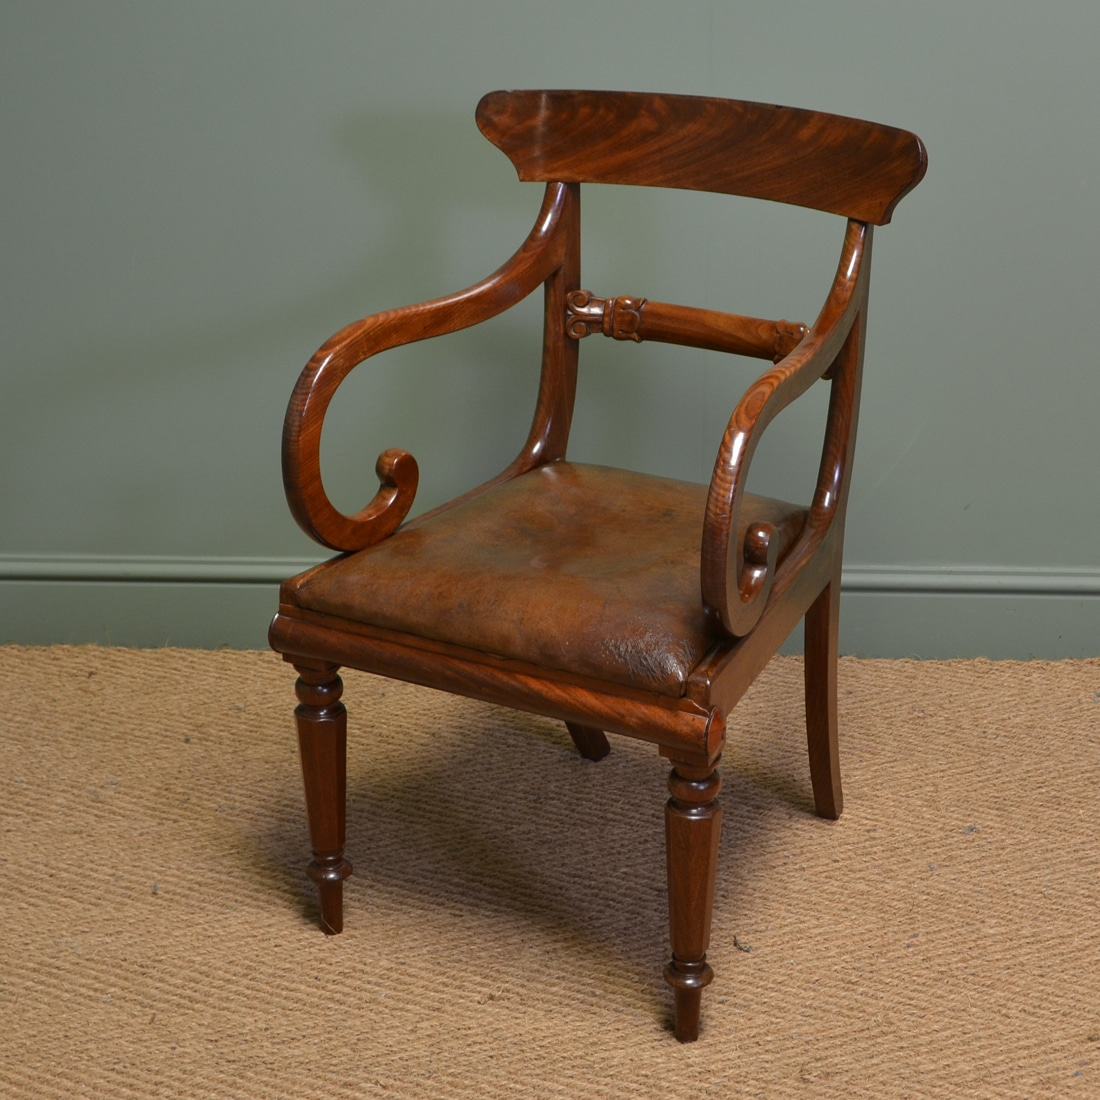 Pleasing Spectacular Georgian Mahogany And Leather Desk Chair Machost Co Dining Chair Design Ideas Machostcouk